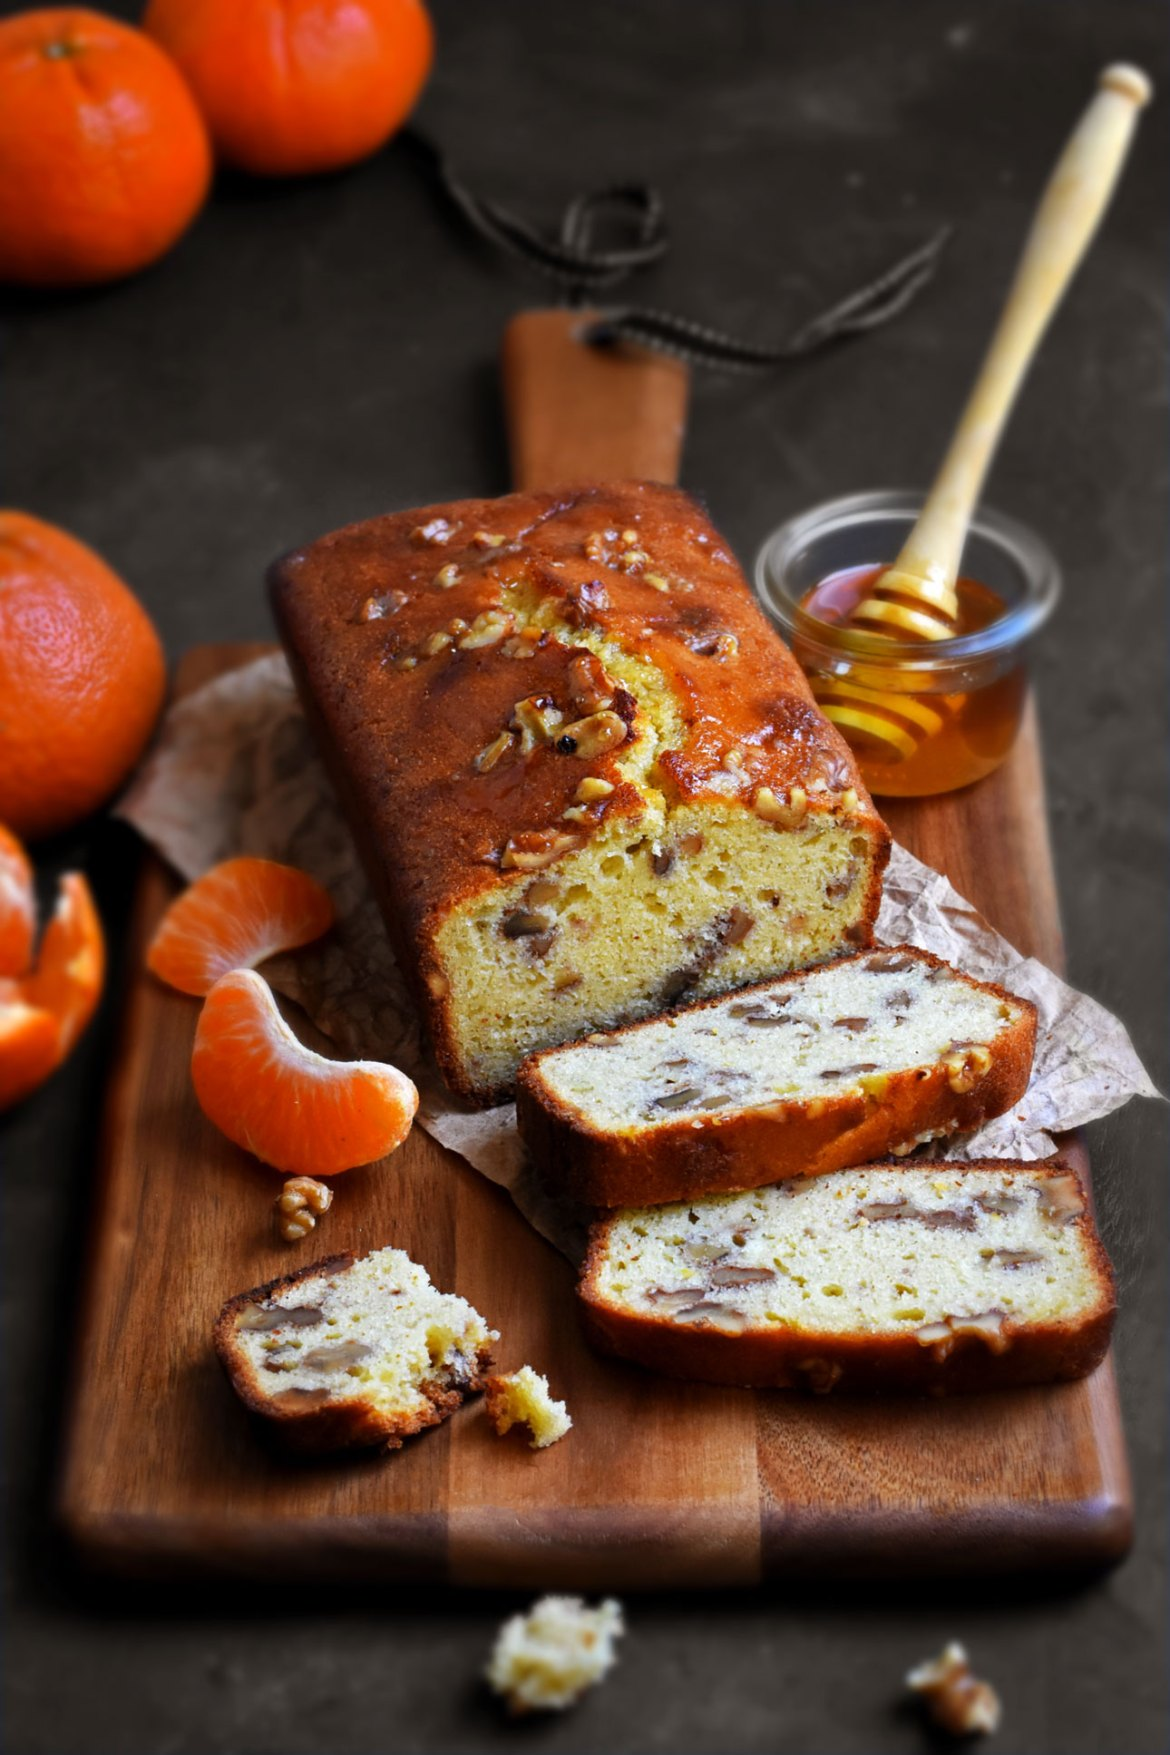 Tangerine Honey Walnut Cake